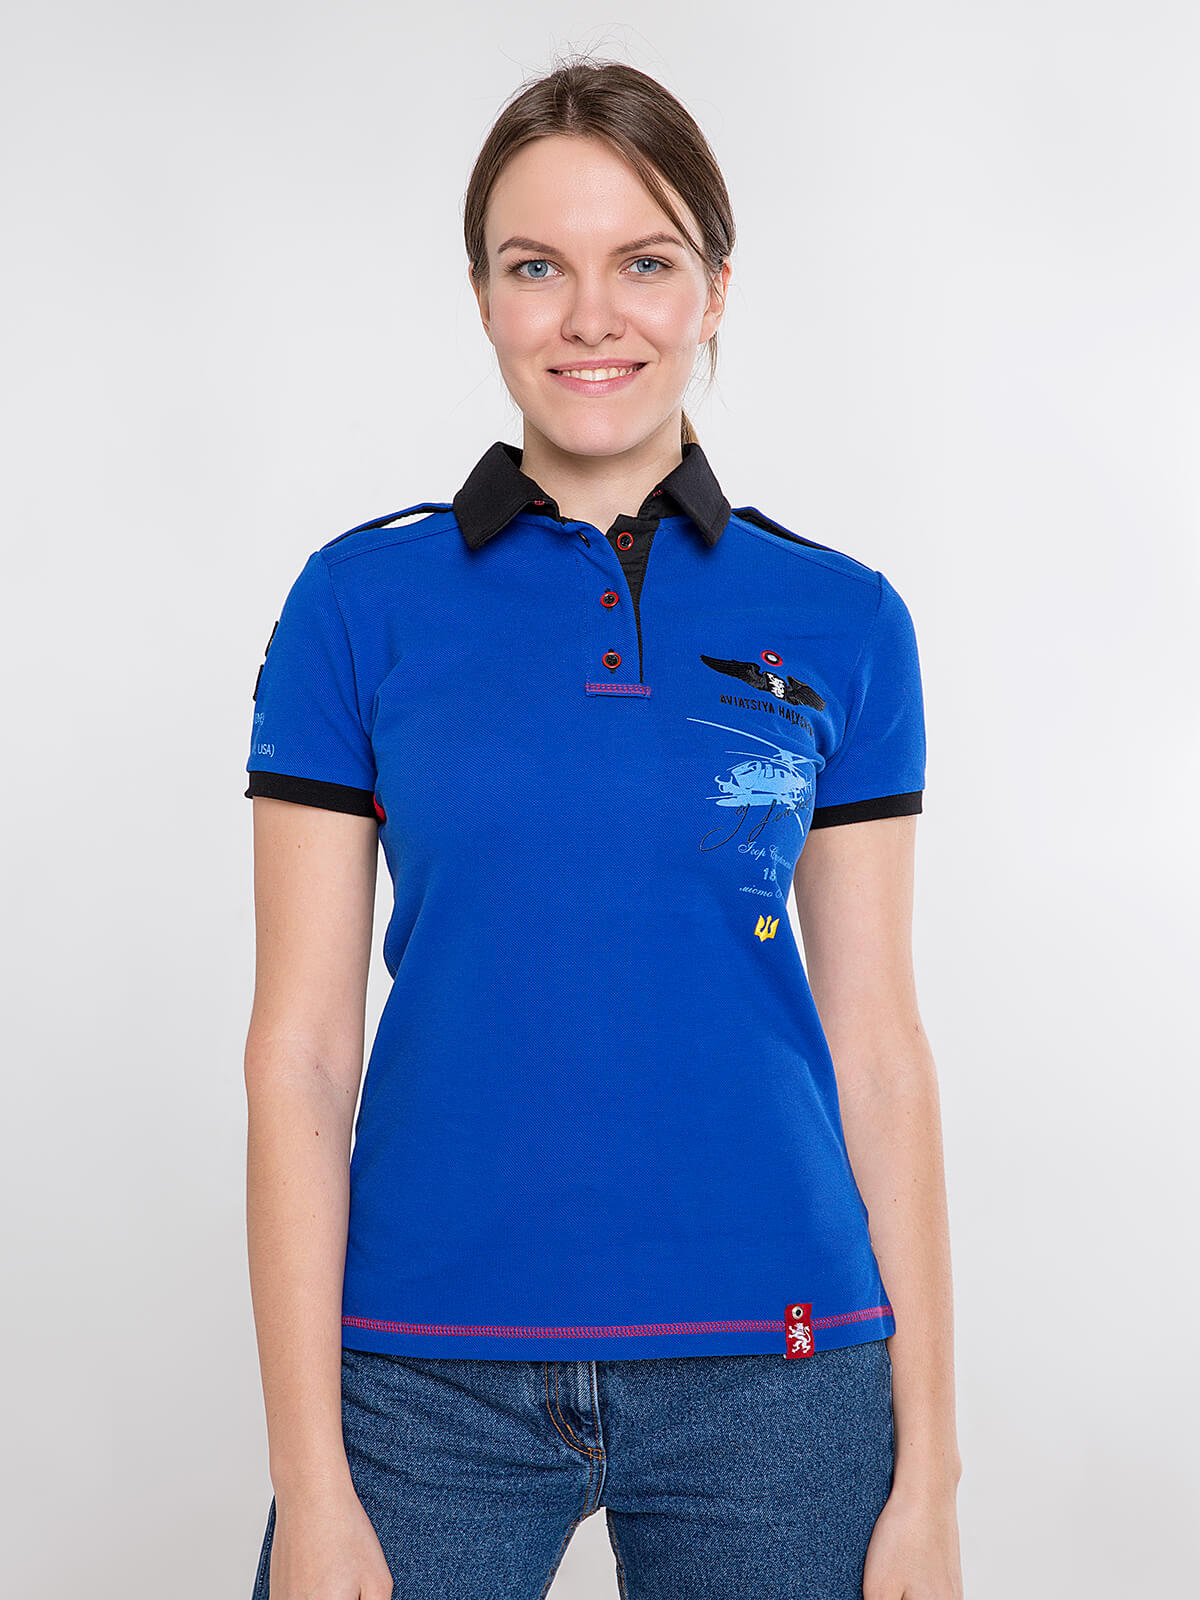 Women's Polo Shirt Sikorsky. Color navy blue. Pique fabric: 100% cotton.